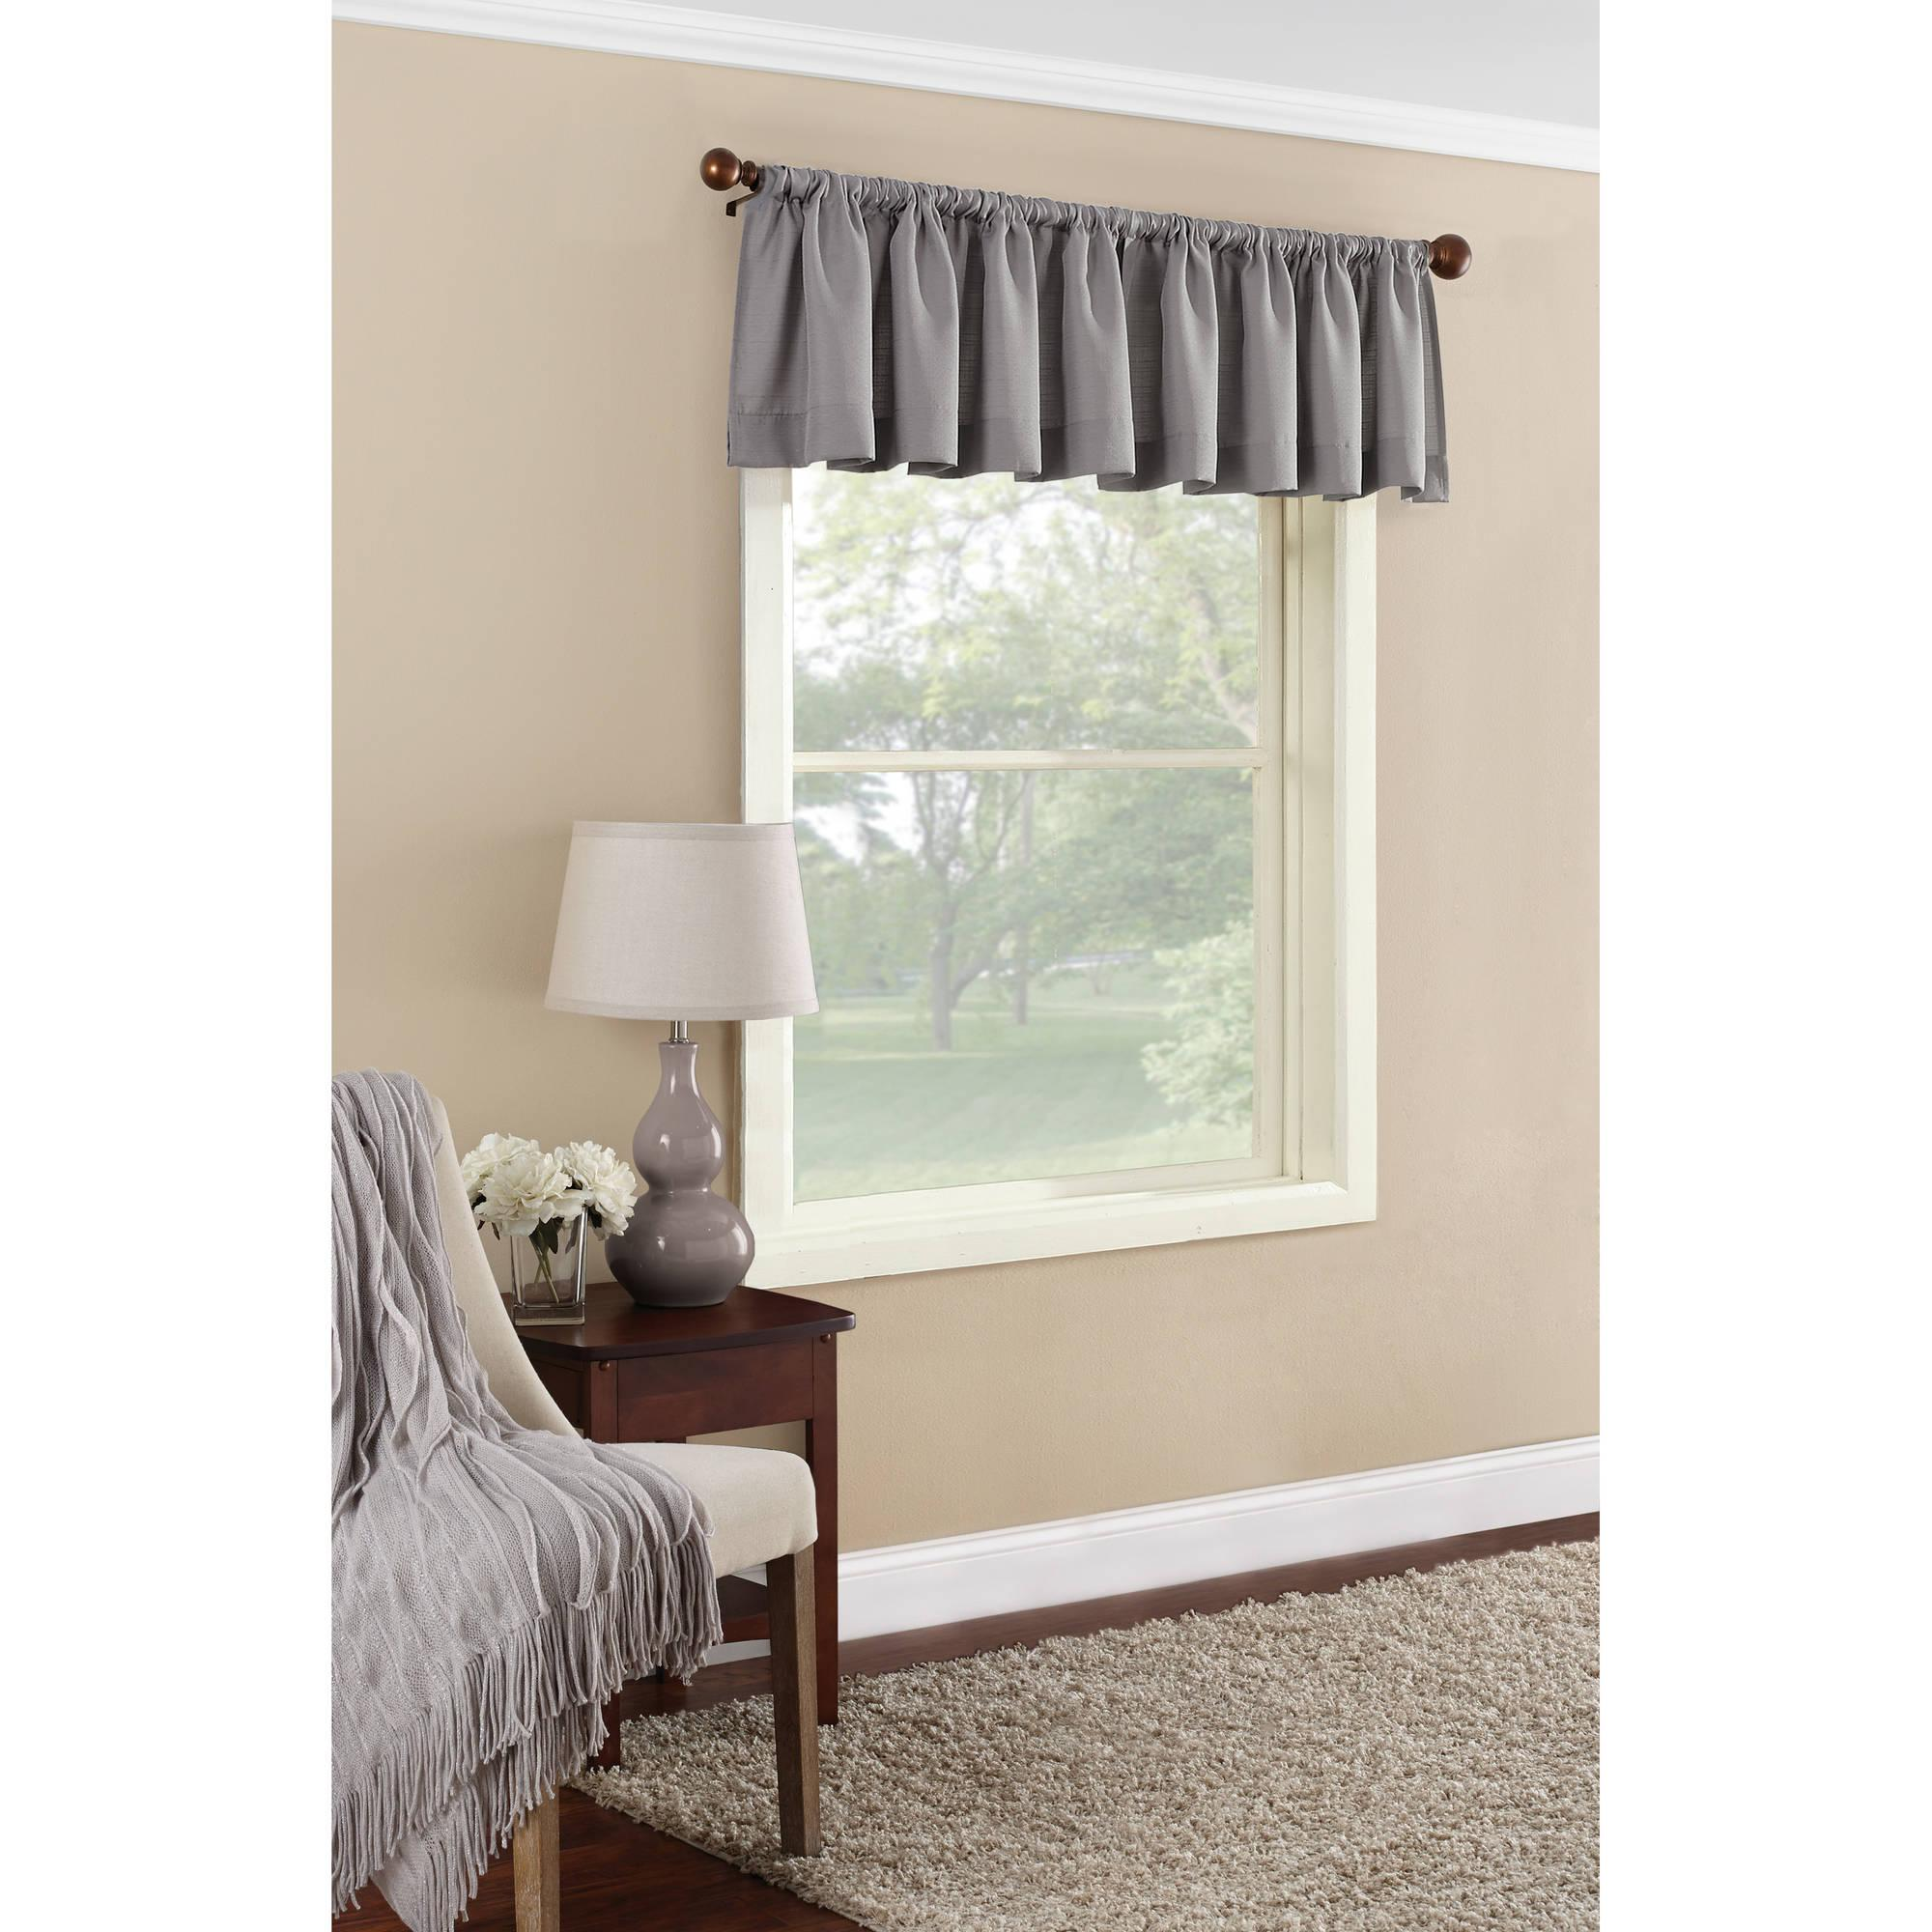 Mainstays Textured Solid Valance Curtain